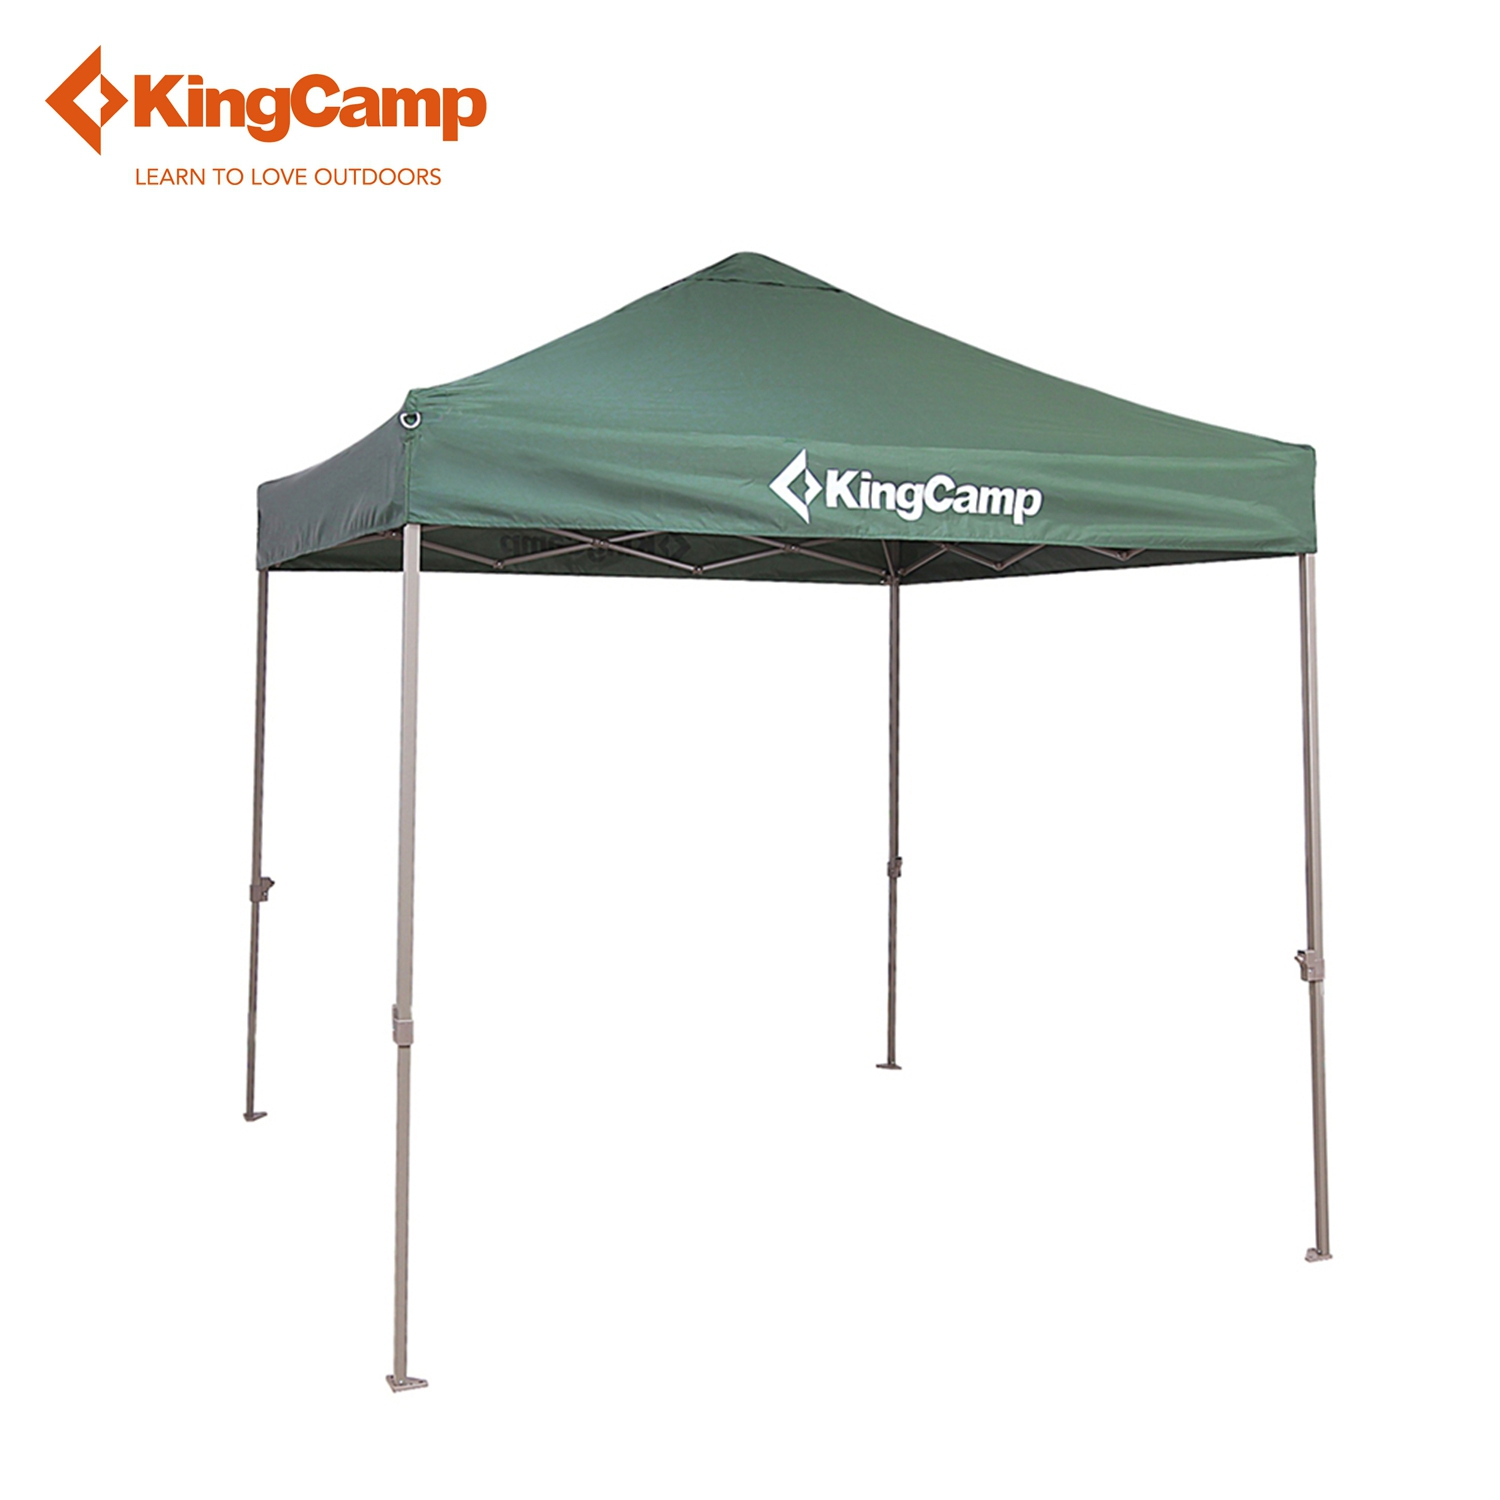 KingCamp Portable Easy Up Sun Shelter Top Grade Outdoor Canopy Tent For  Patio Party Picnic